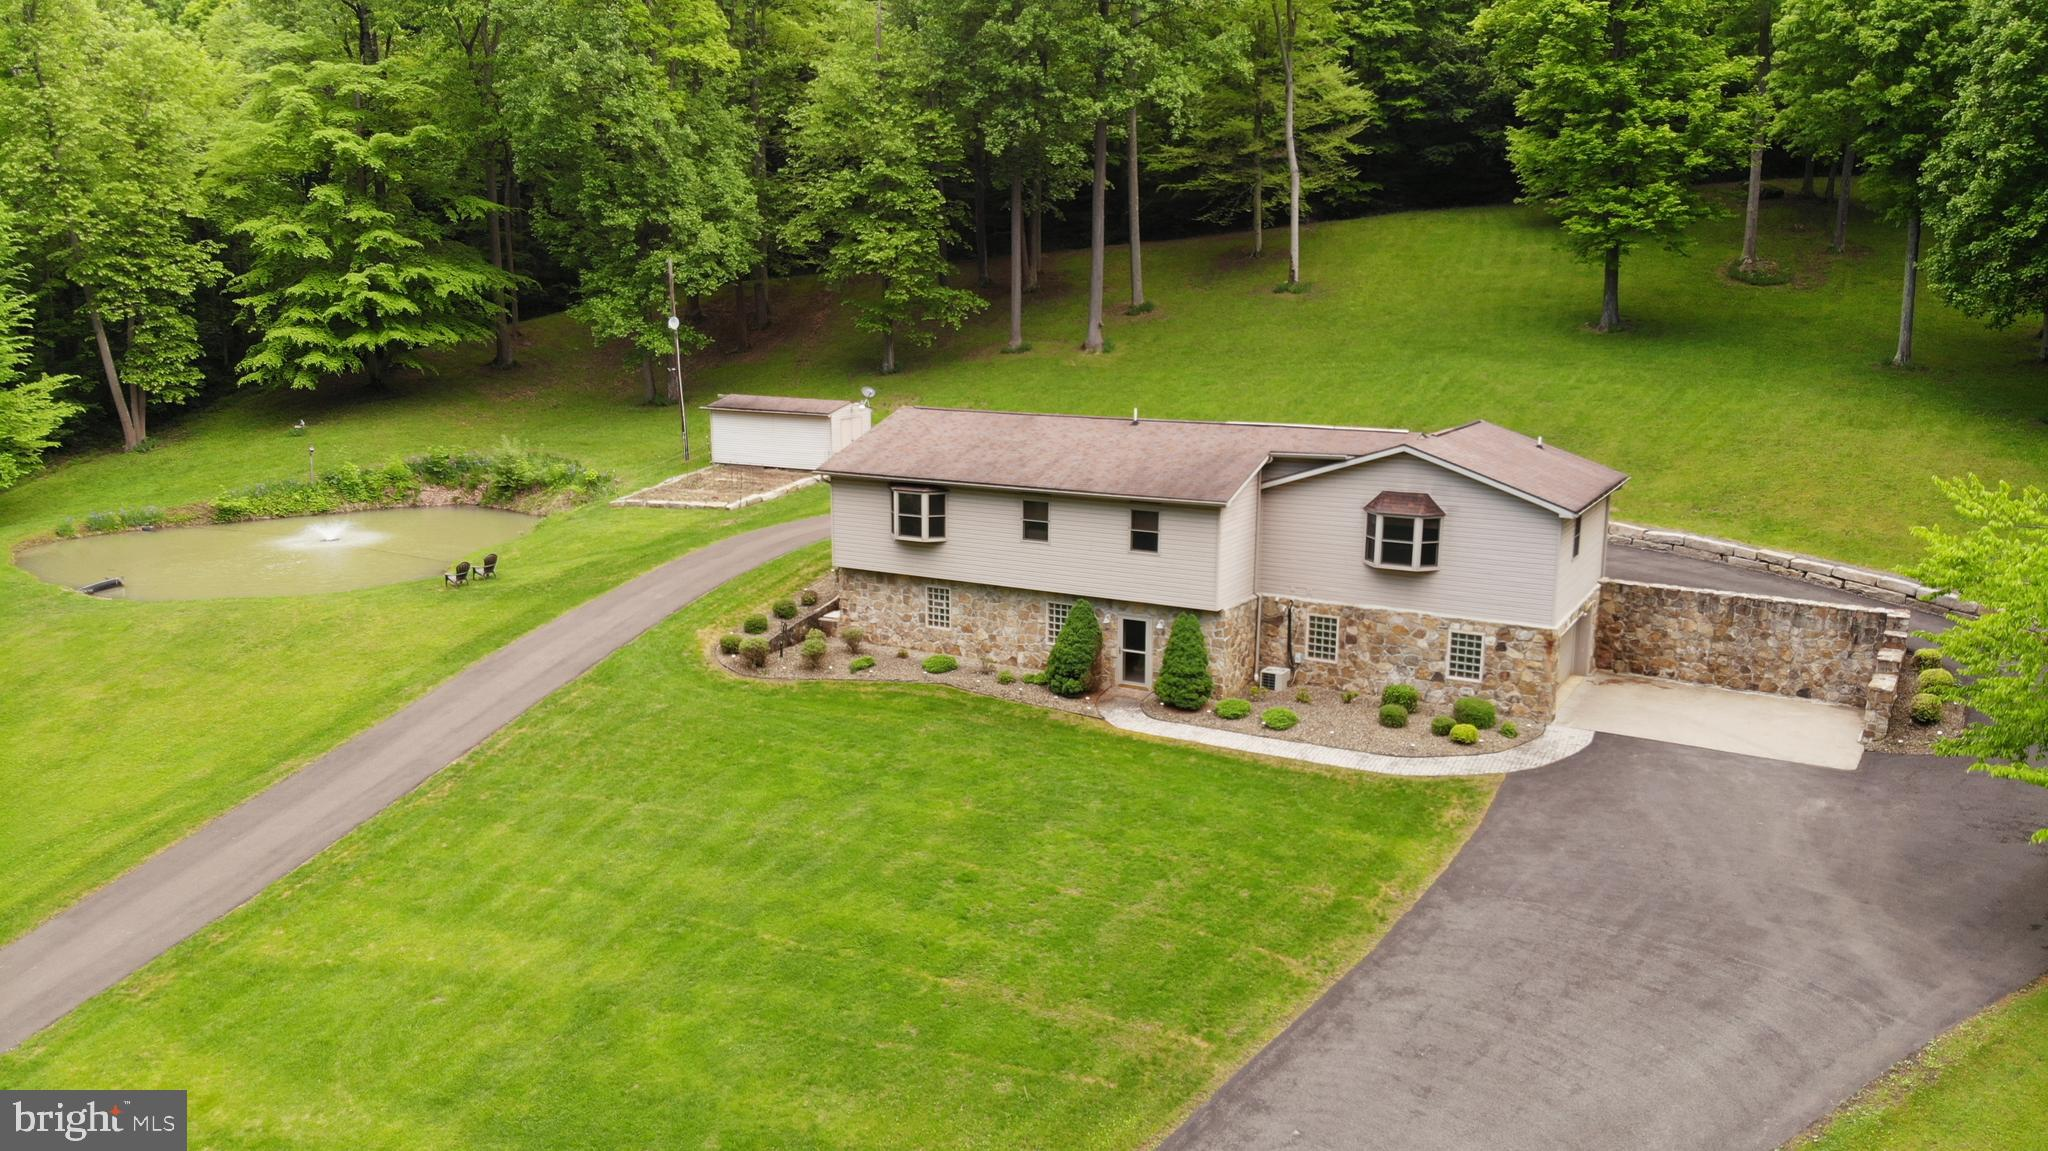 2356 WHETSELL SETTLEMENT ROAD, TERRA ALTA, WV 26764